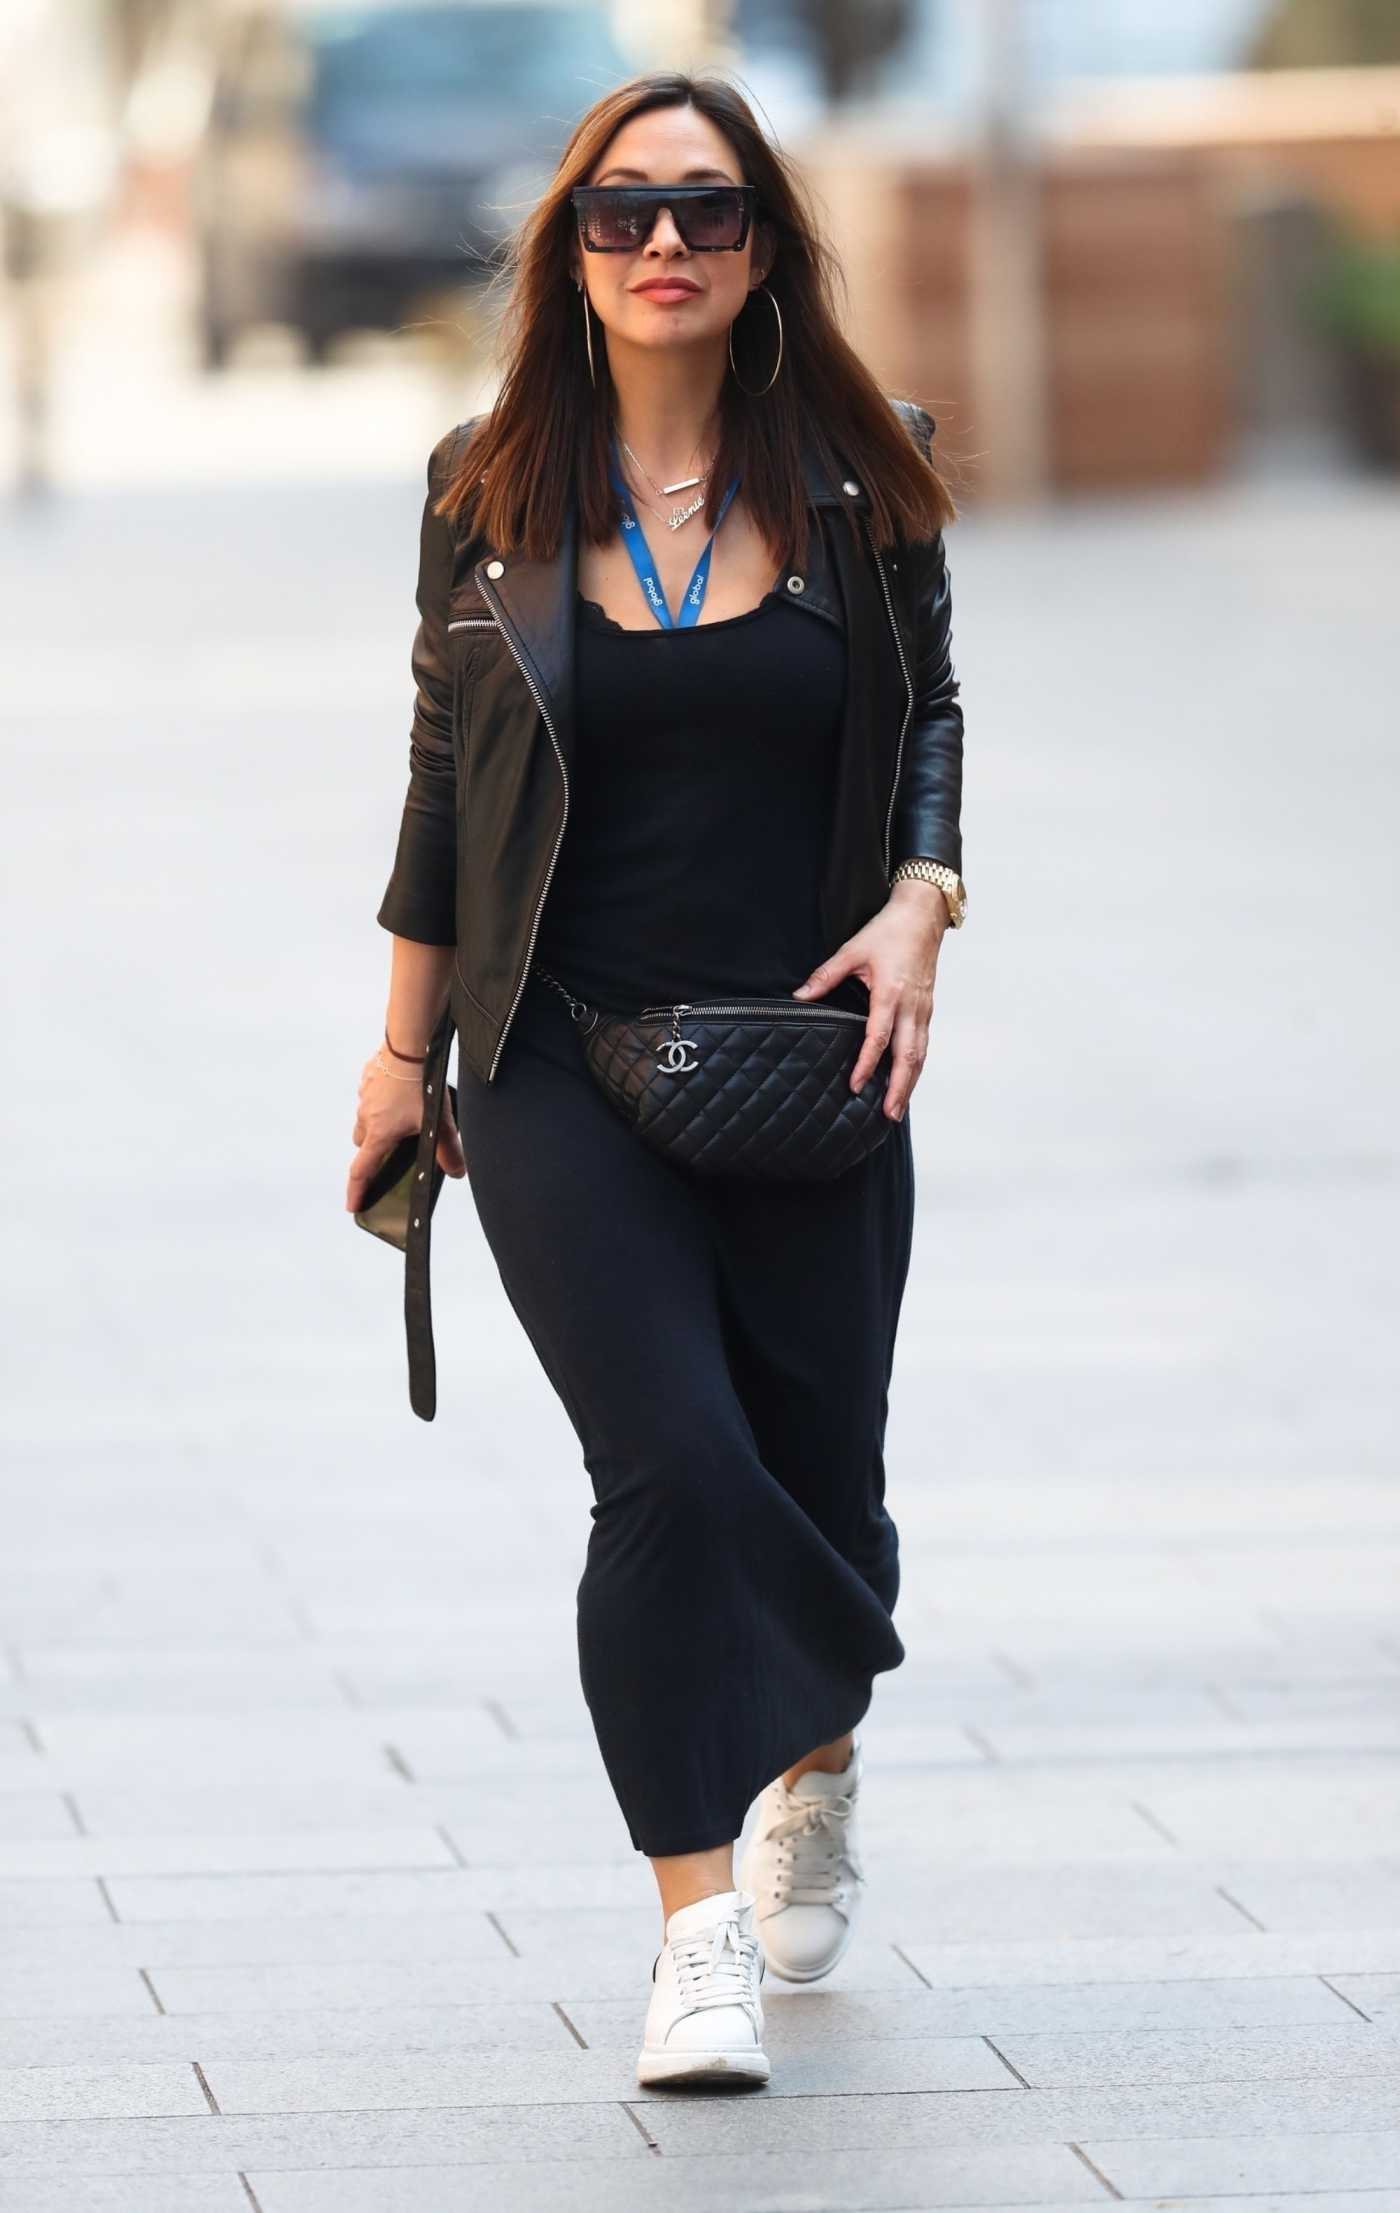 Myleene Klass in a Black Leather Jacket Arrives at Global Radio in London 03/27/2020